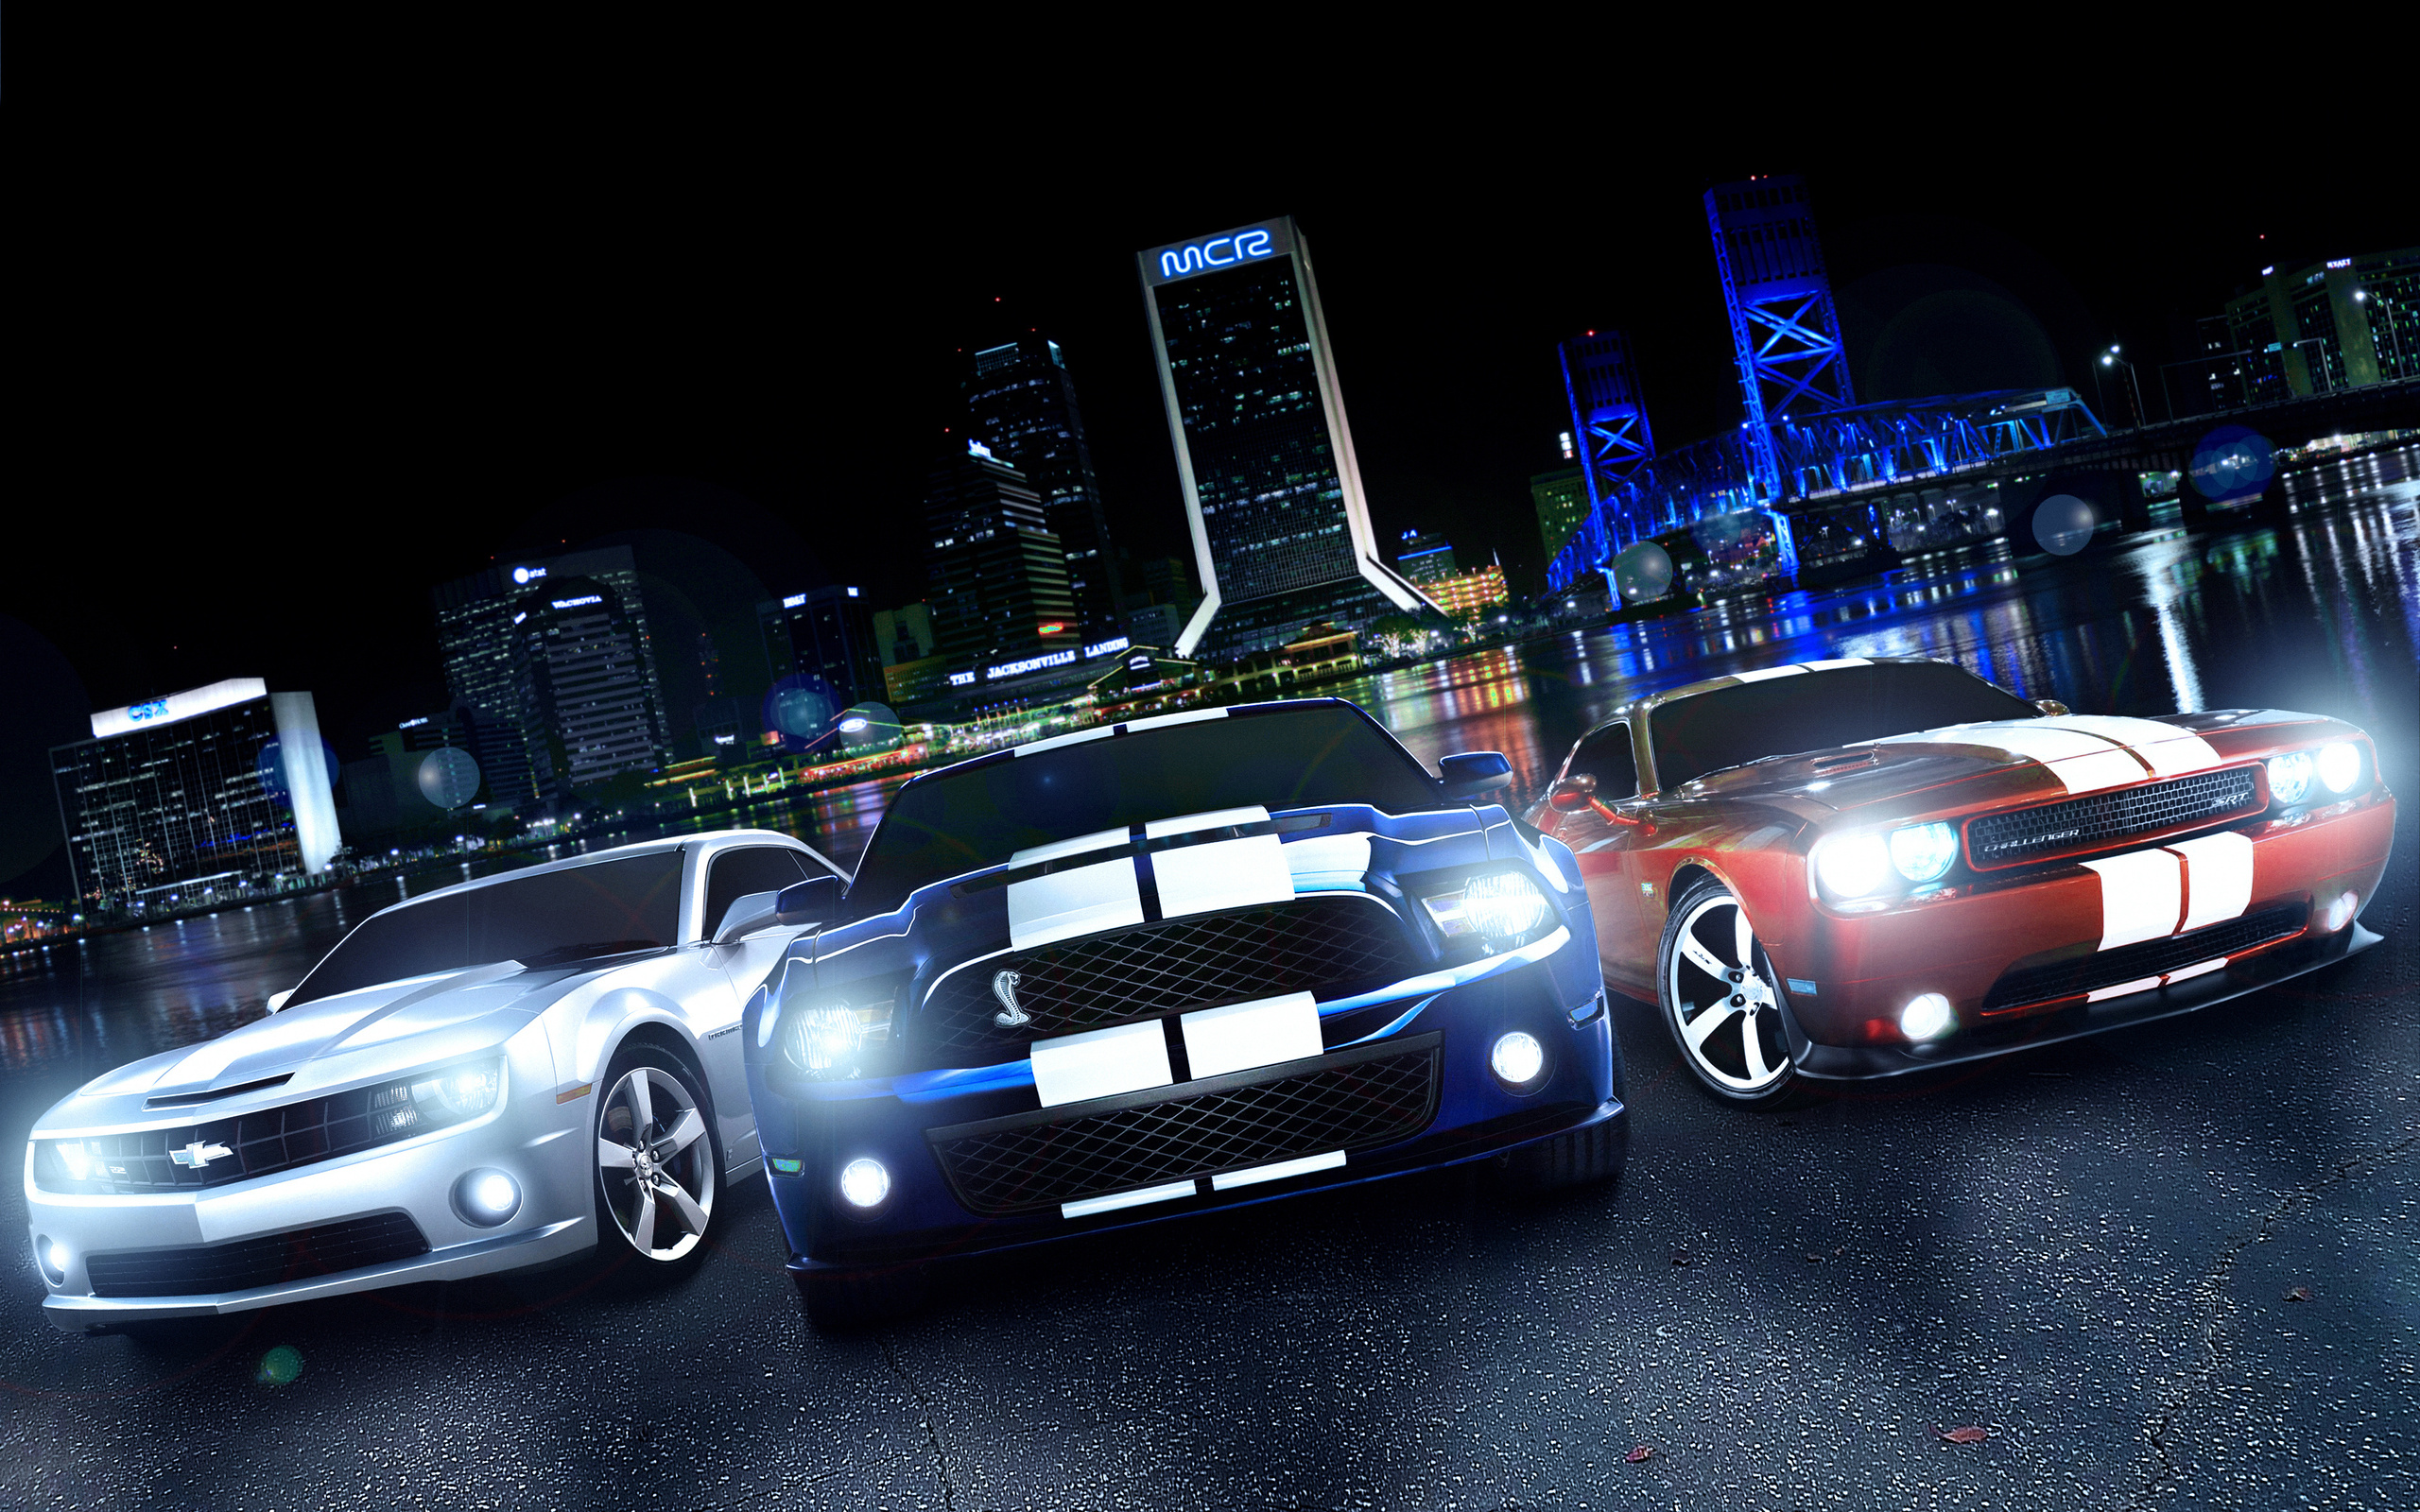 Wallpaper's Collection: «Cool Cars Wallpapers»